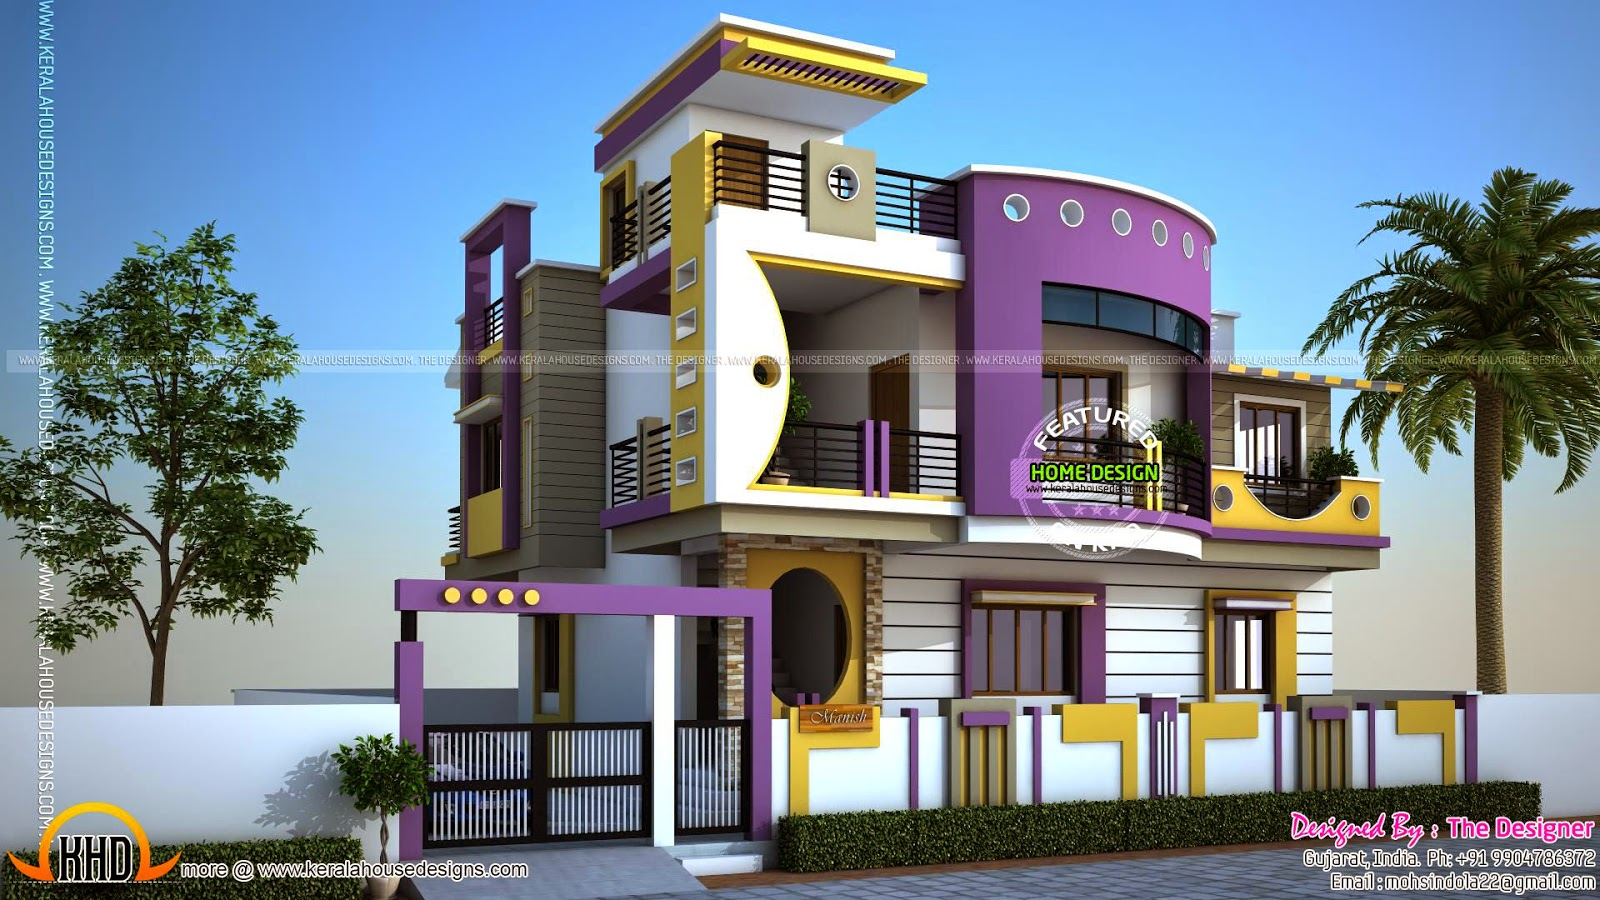 House exterior designs in contemporary style kerala home for House design interior and exterior